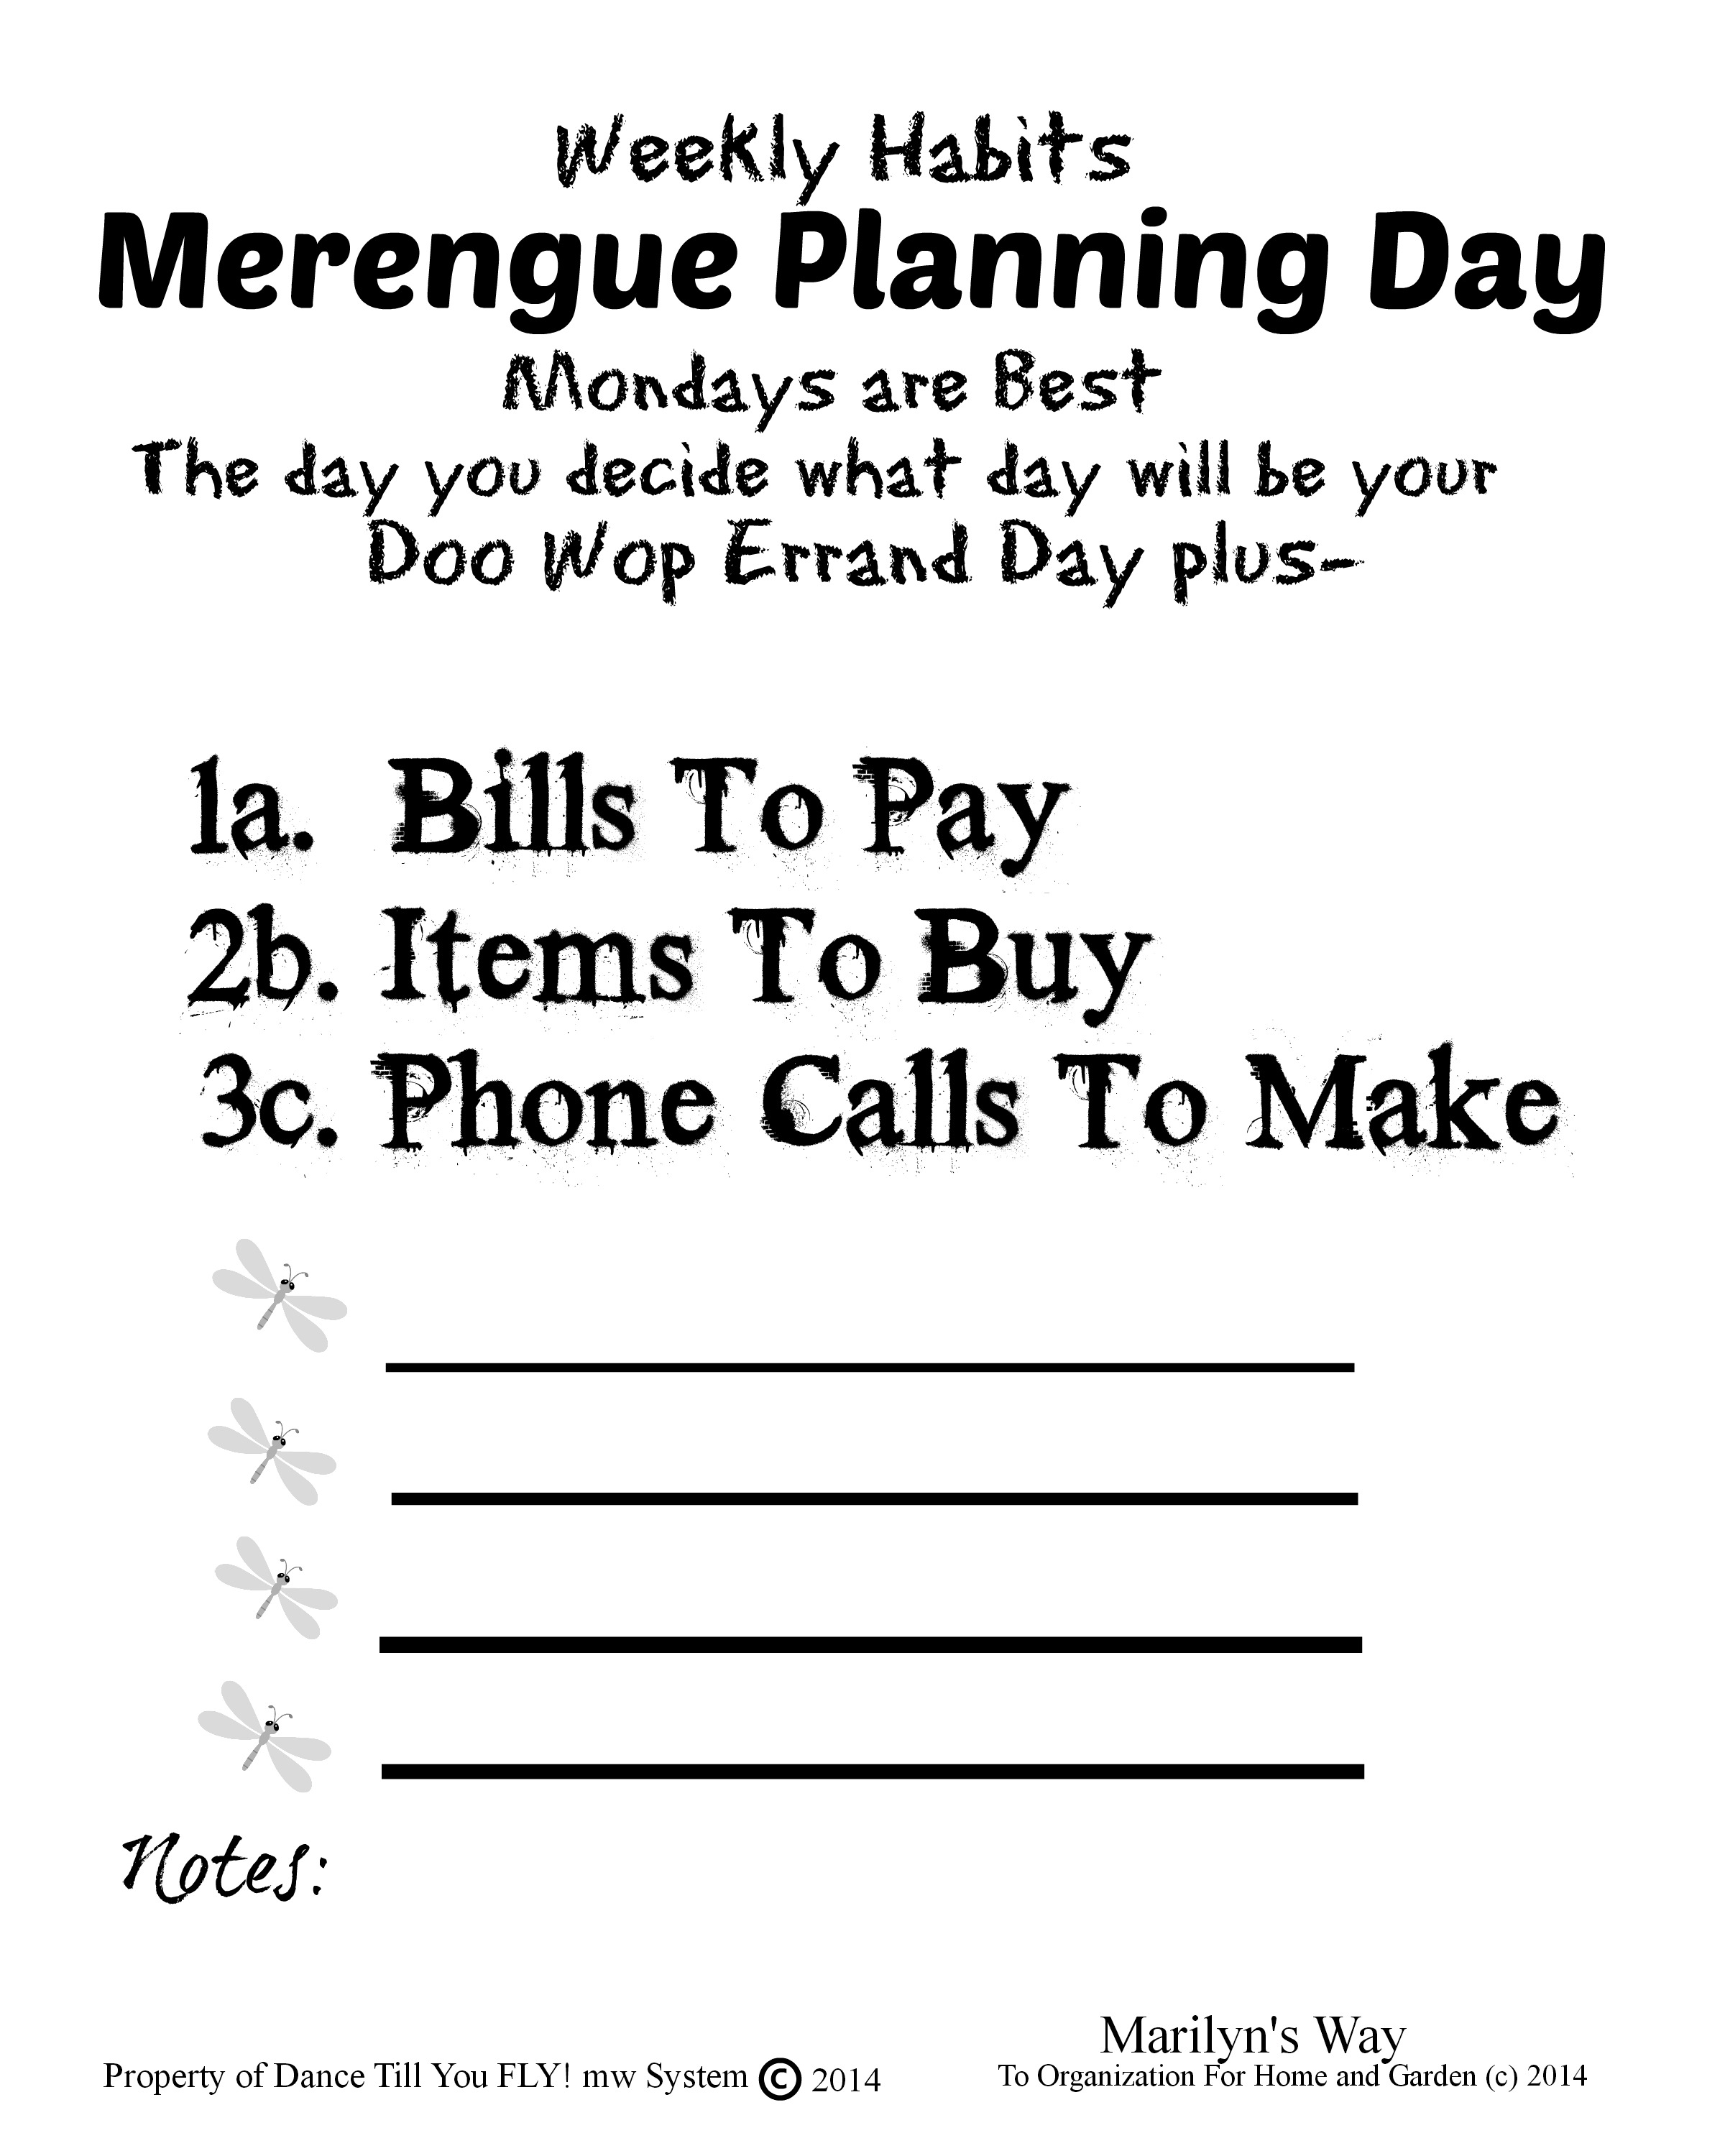 A form to help you plan your week.